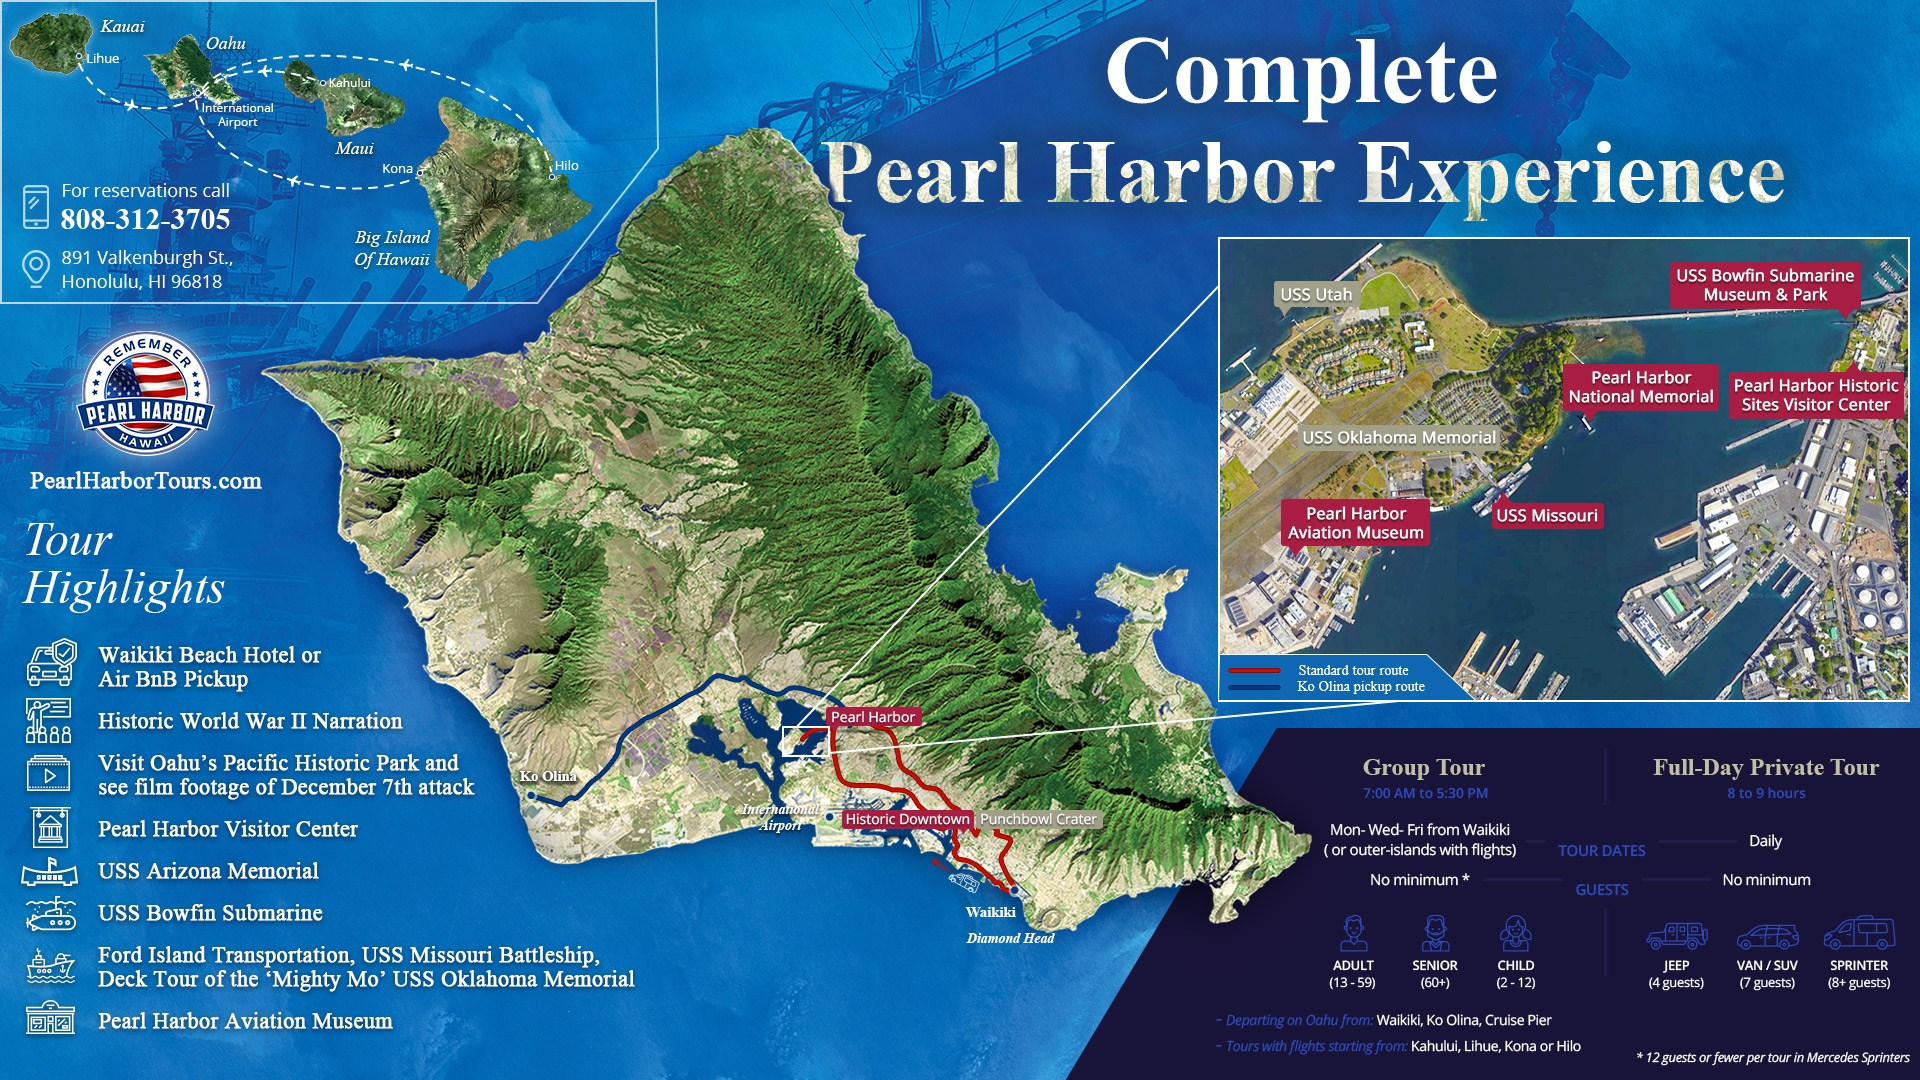 Complete Pearl Harbor Experience Map